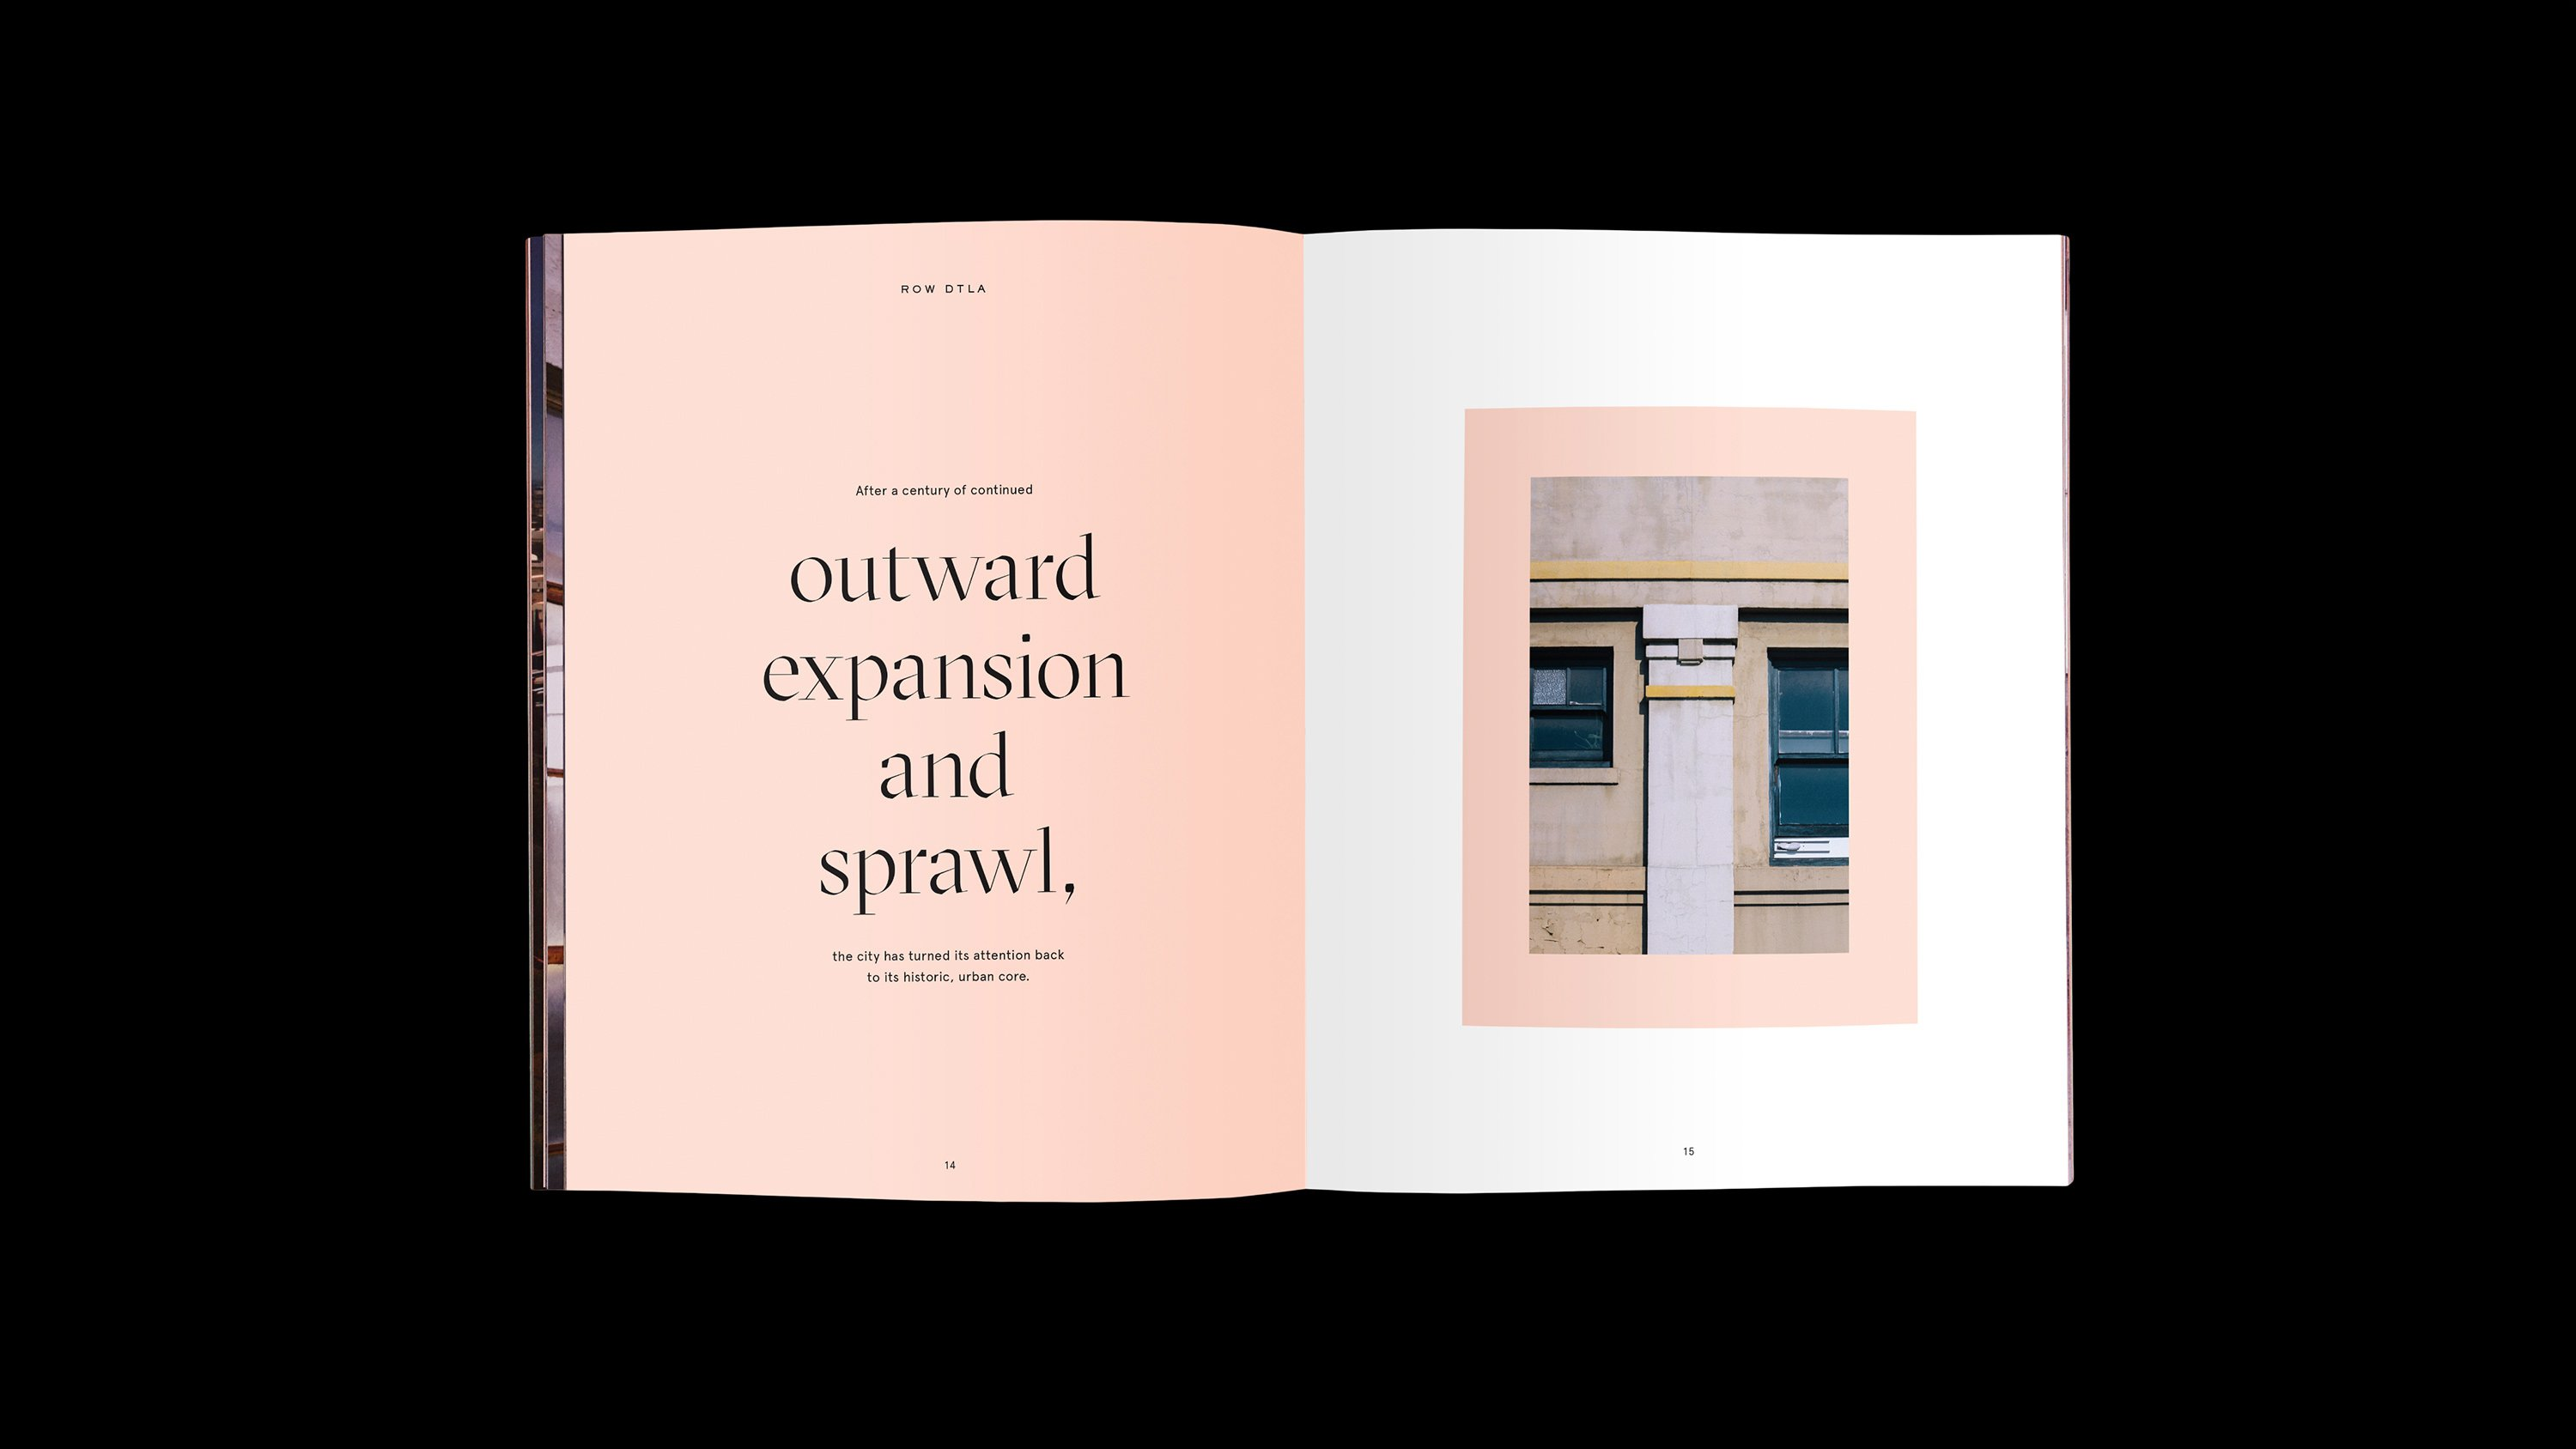 Row DTAL Brand Book interior spread, branding and print design by RoAndCo